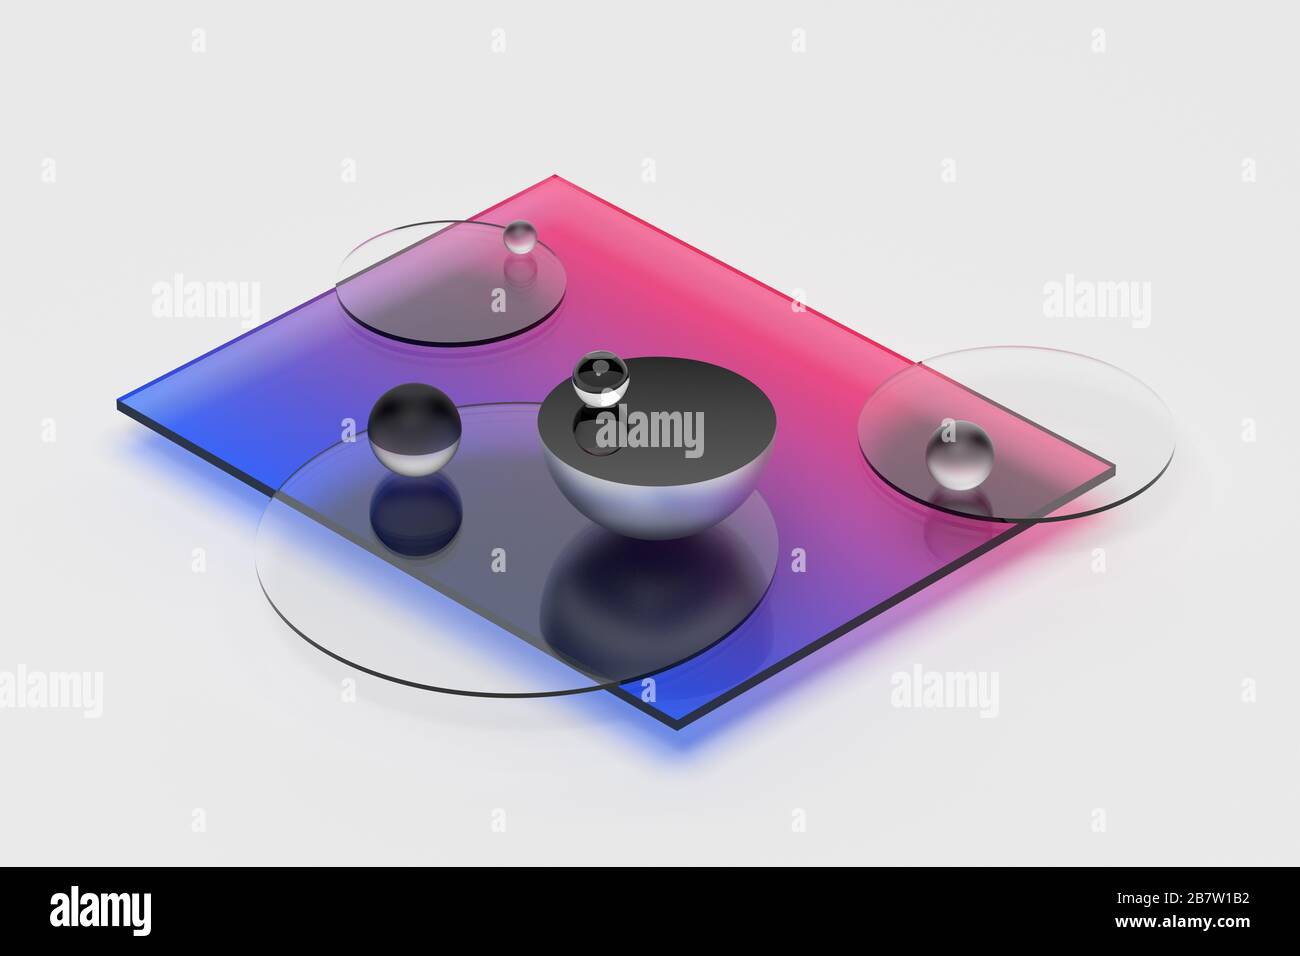 Abstract 3d rendering of geometric shapes. Composition with spheres. Modern background design for poster, cover, branding, banner, placard. Stock Photo